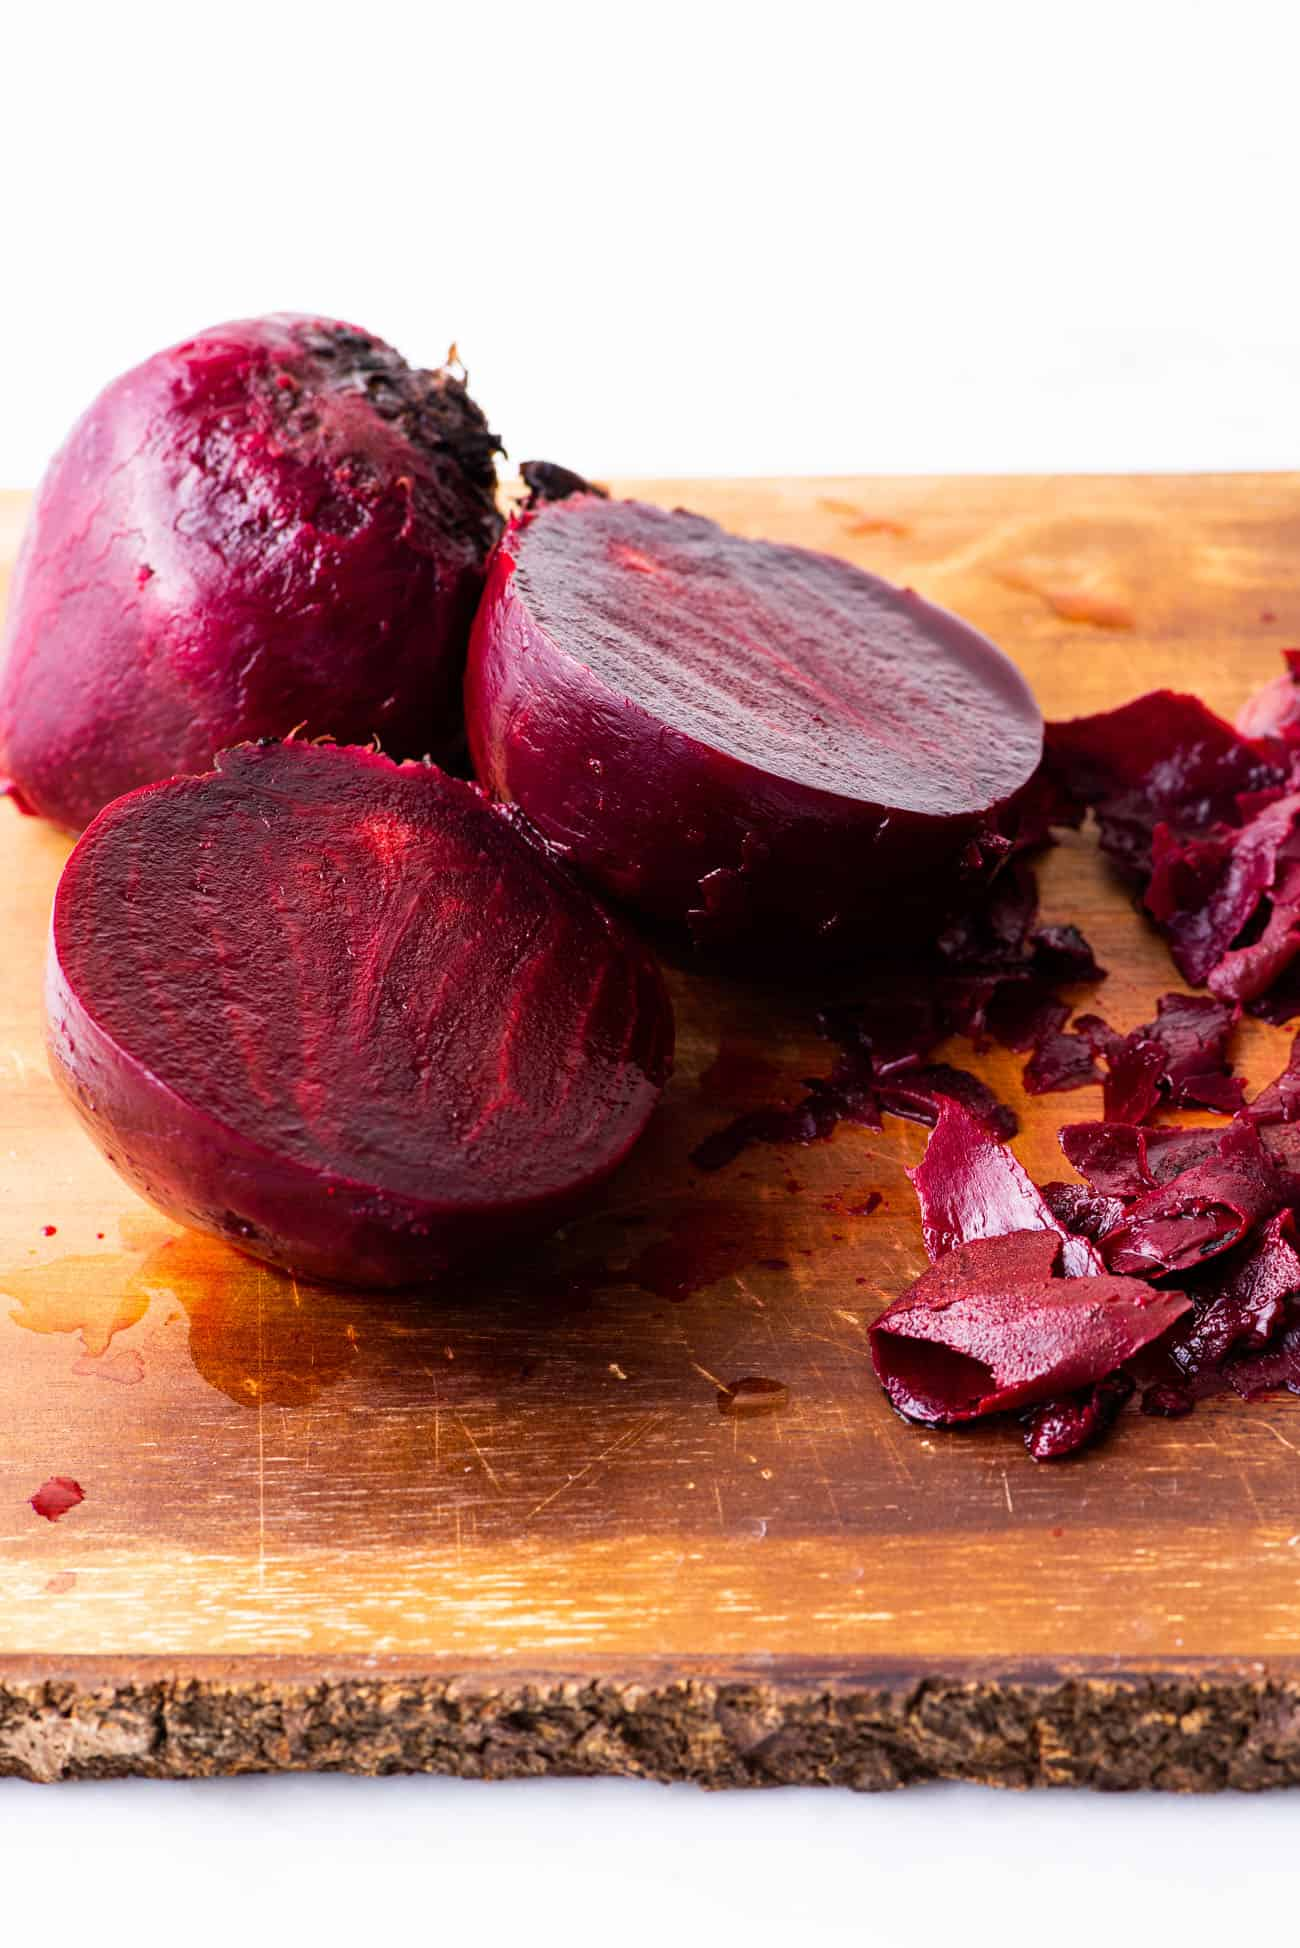 Peeled beets on a wooden cutting board